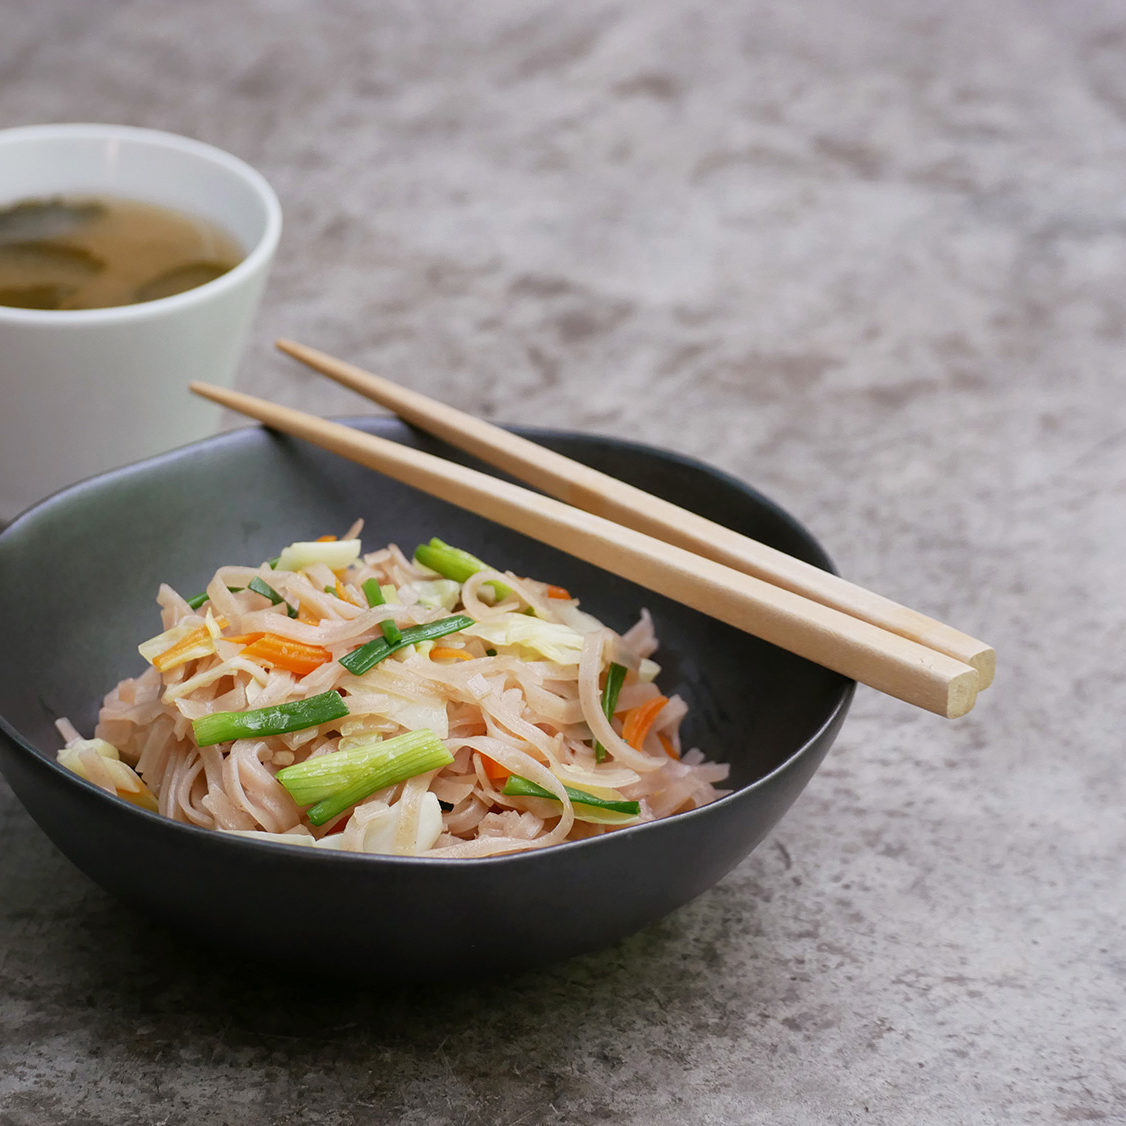 Yaki Soba with Brown Rice Noodles and Miso Soup